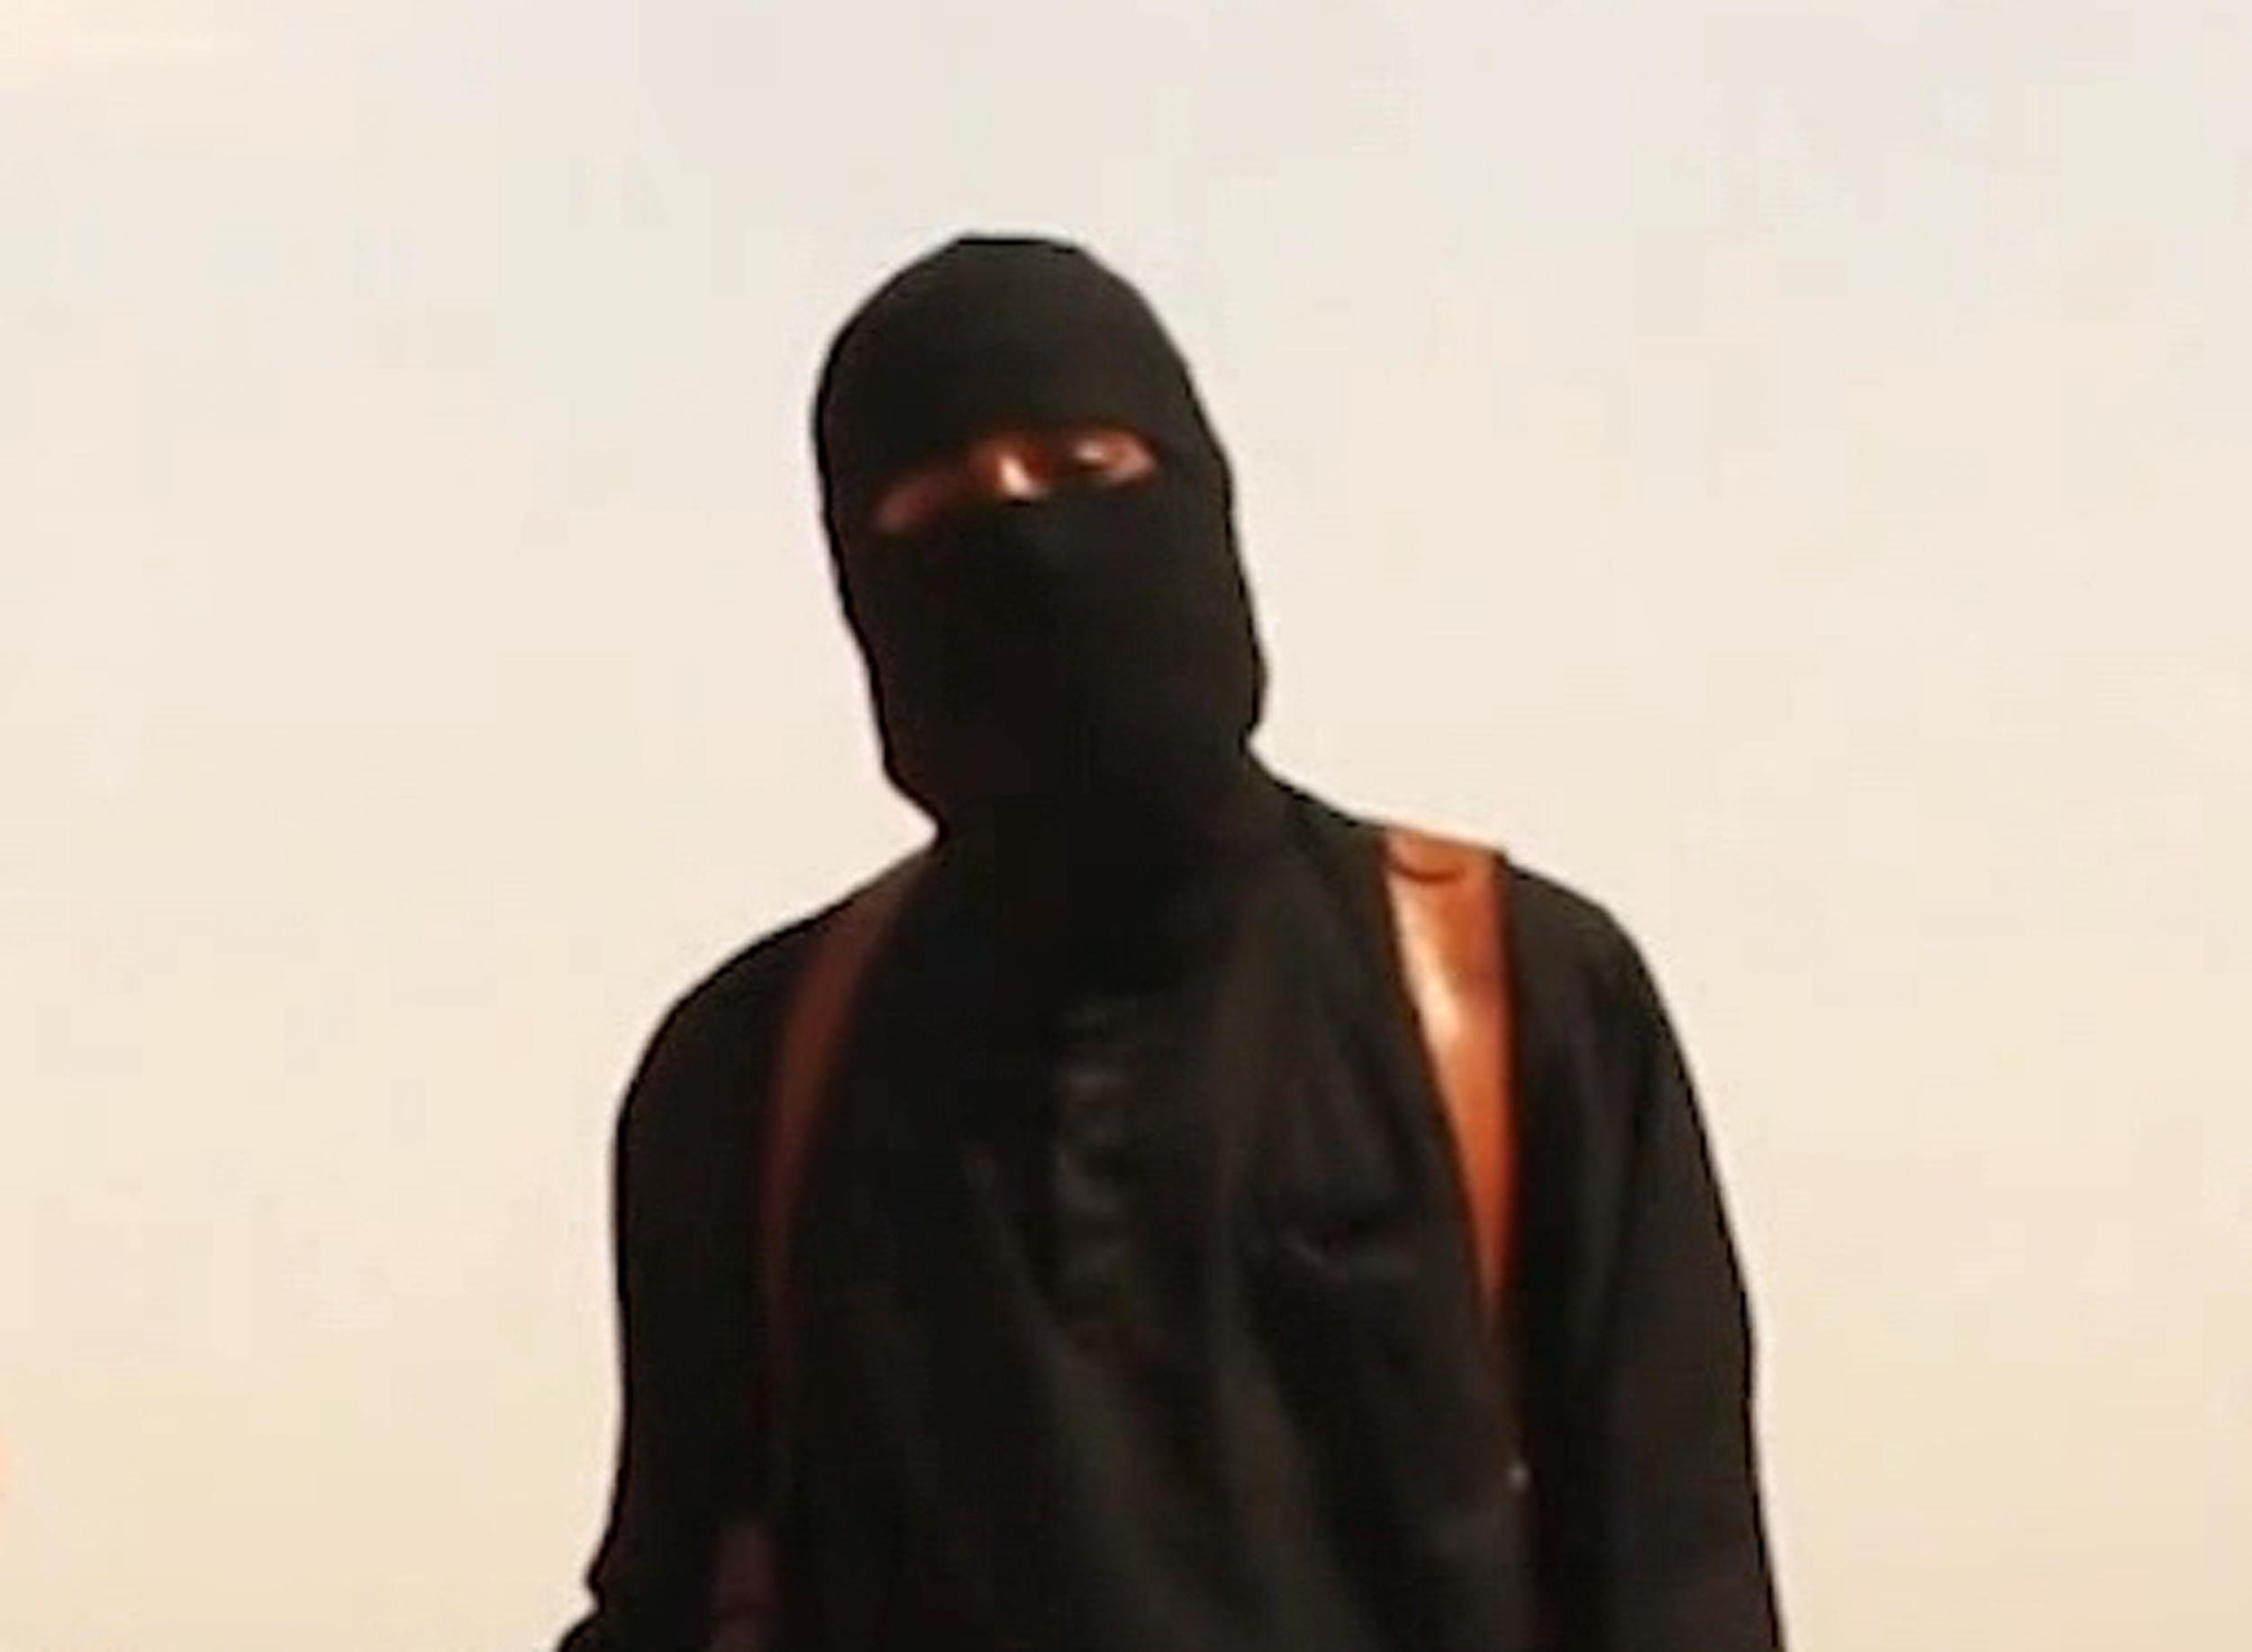 Image: An ISIS militant stands next to James Foley in a video released by the group.